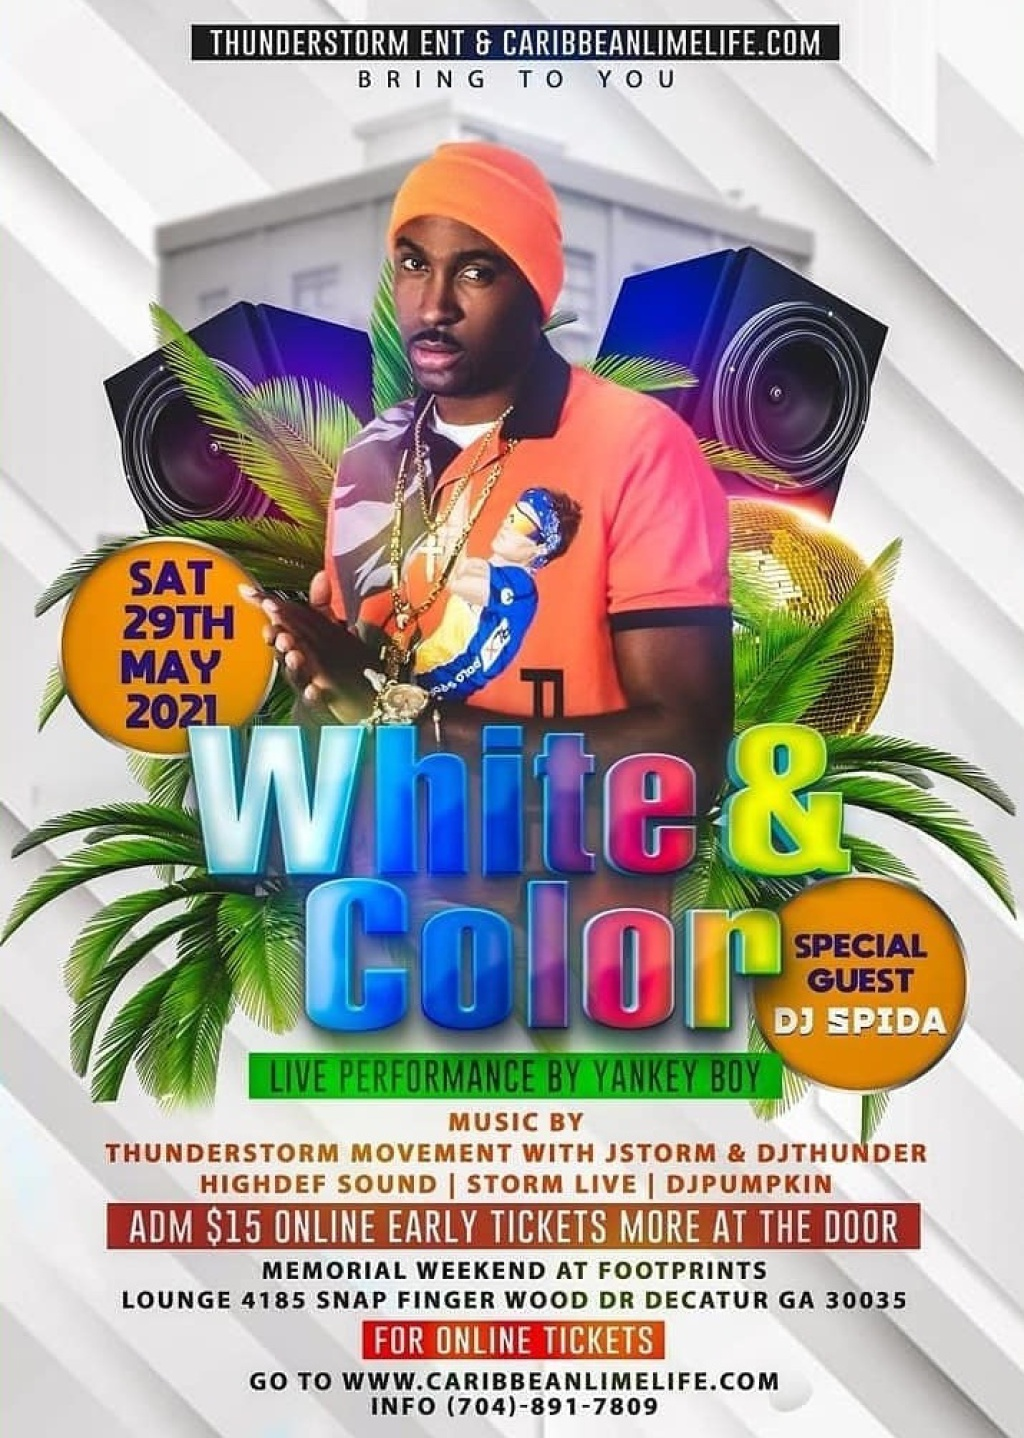 White & Color flyer or graphic.